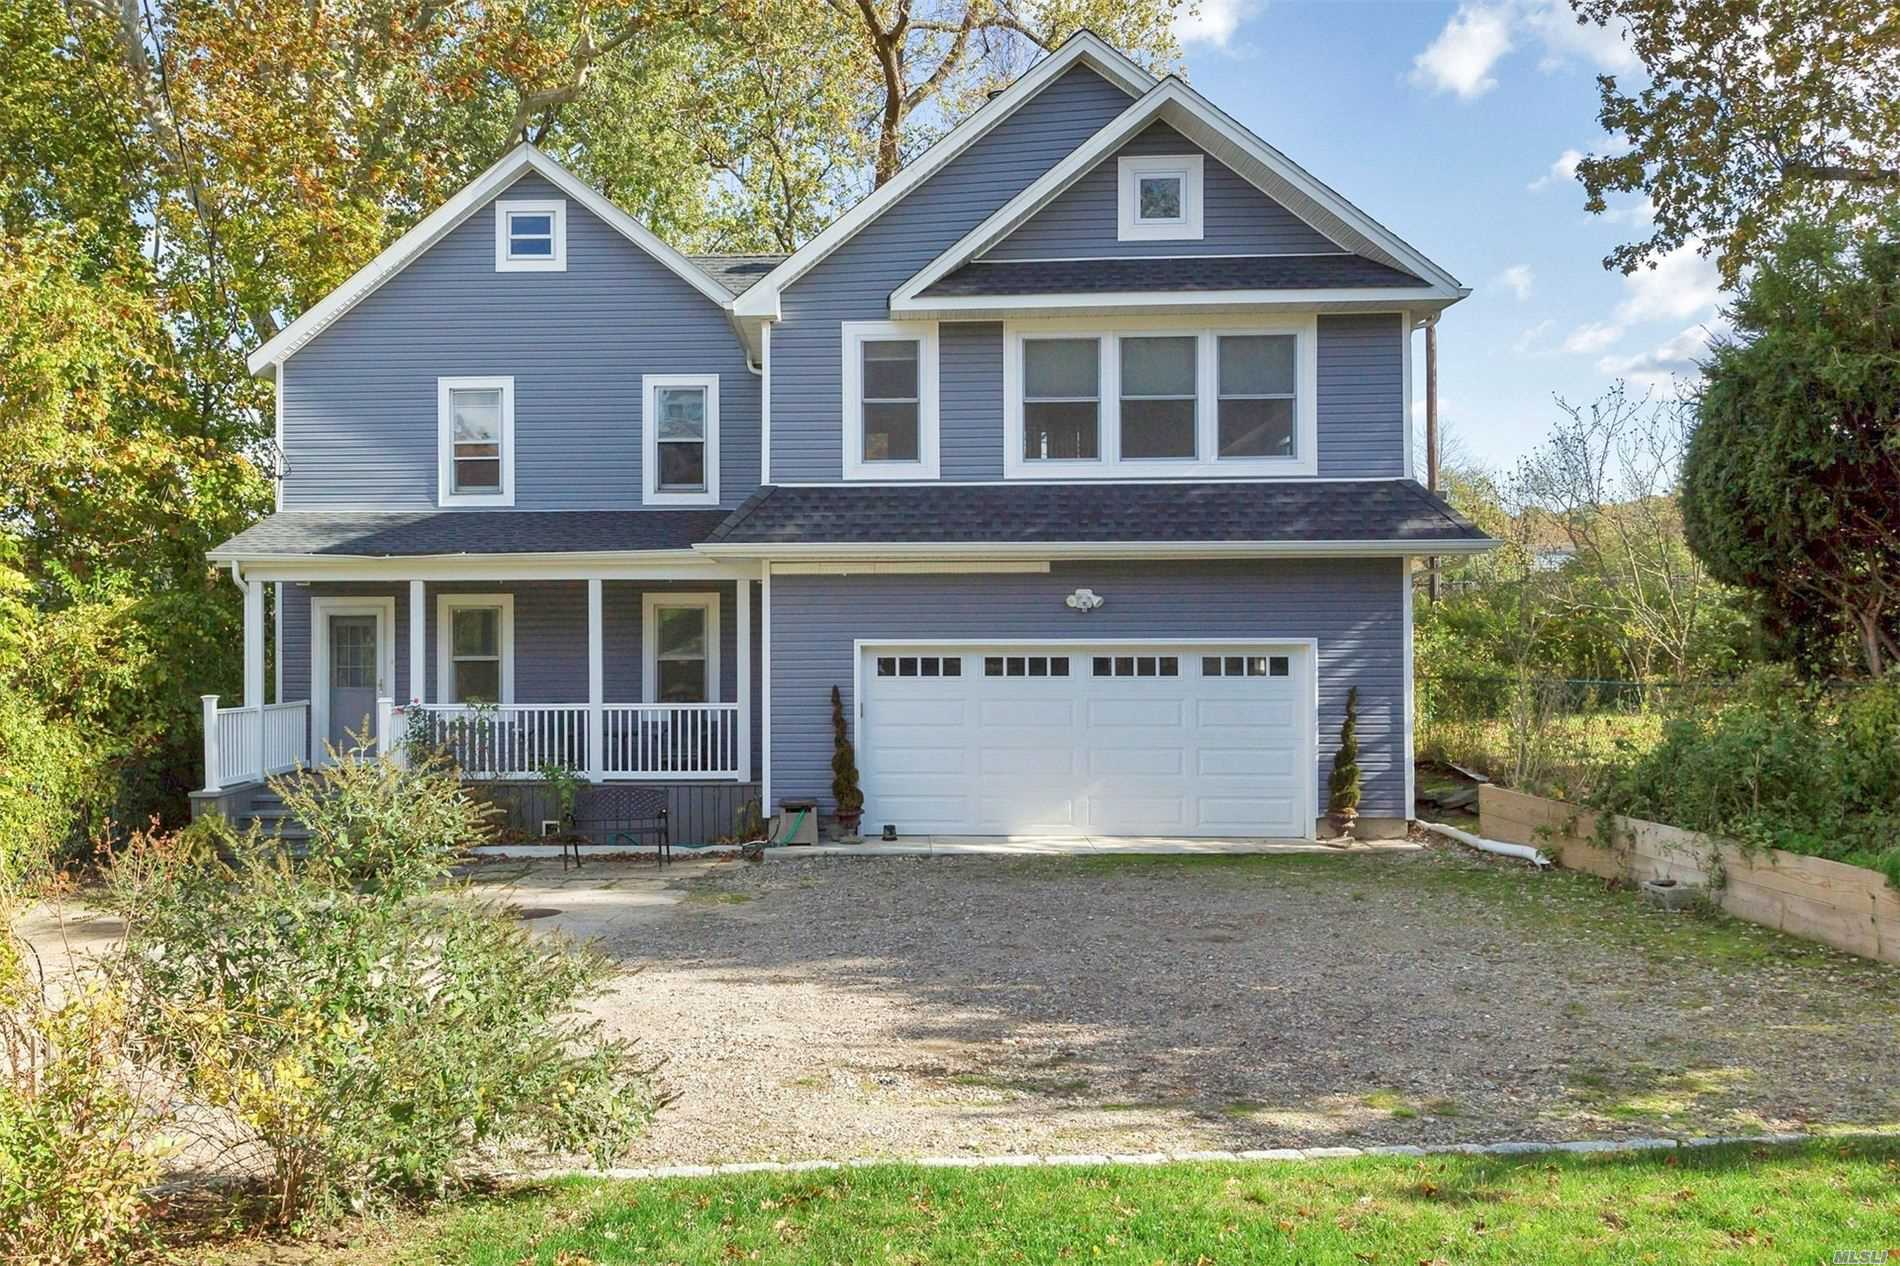 63 Anstice St - Oyster Bay, New York